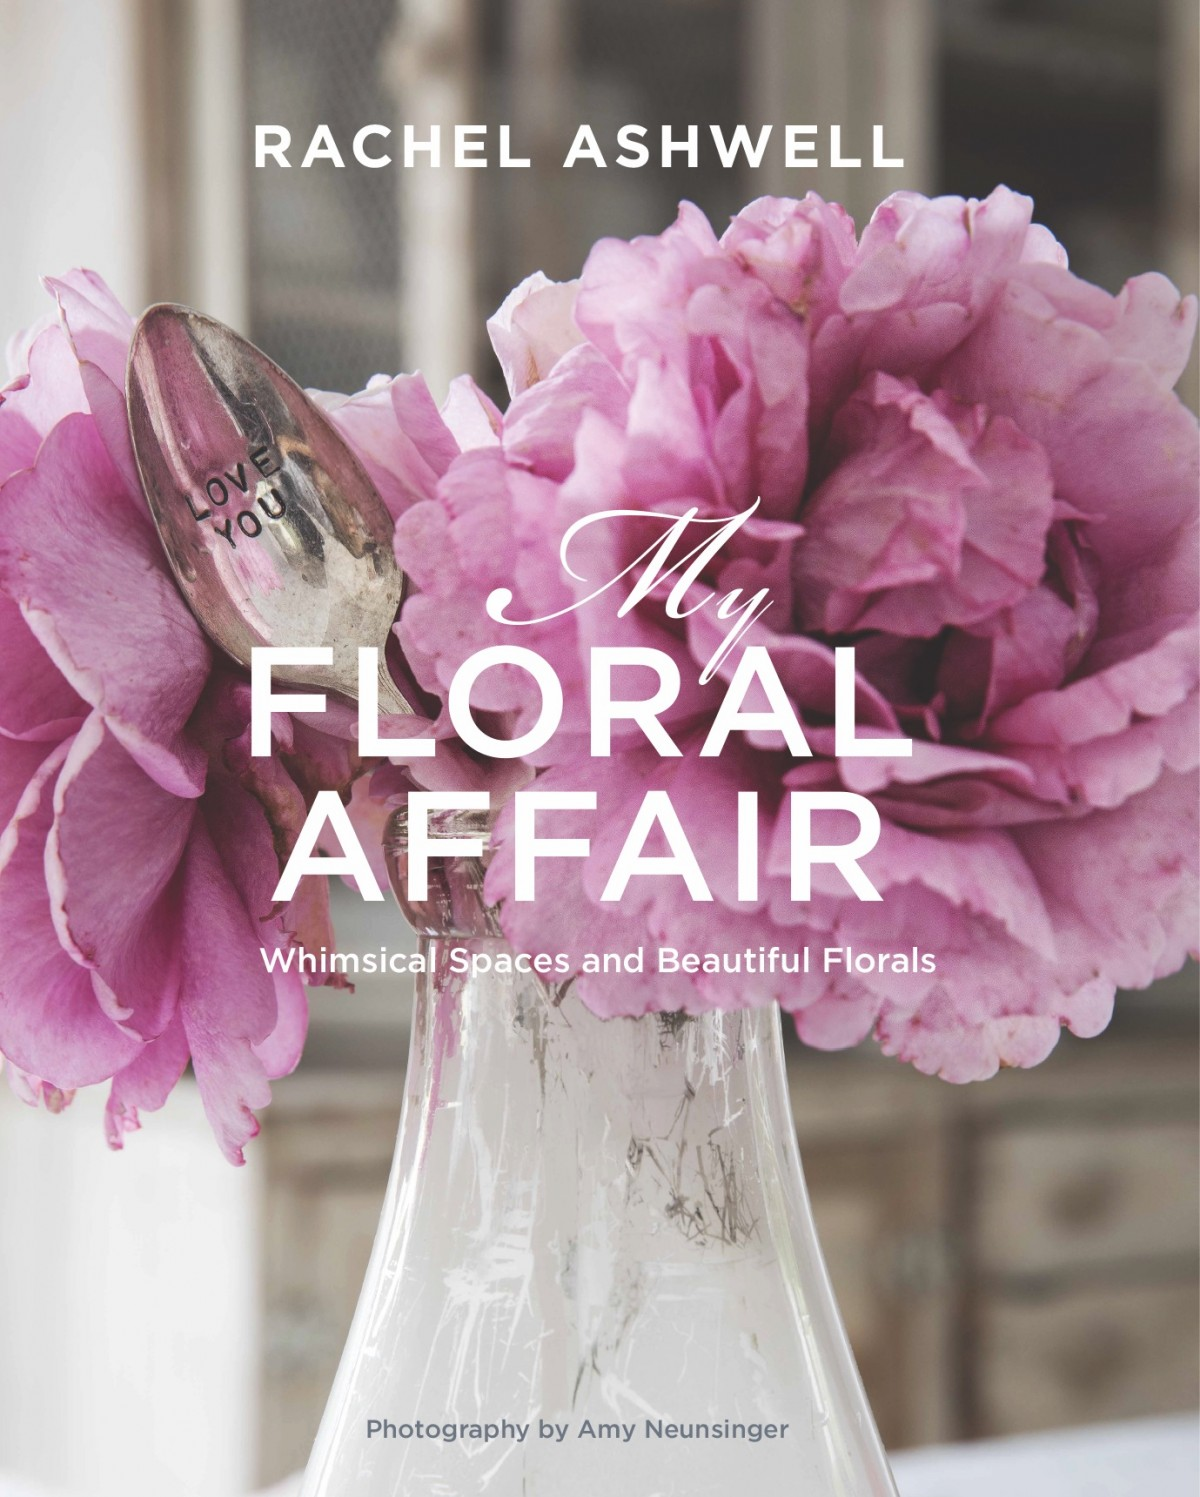 book cover for My Floral Affair by Rachel Ashwell